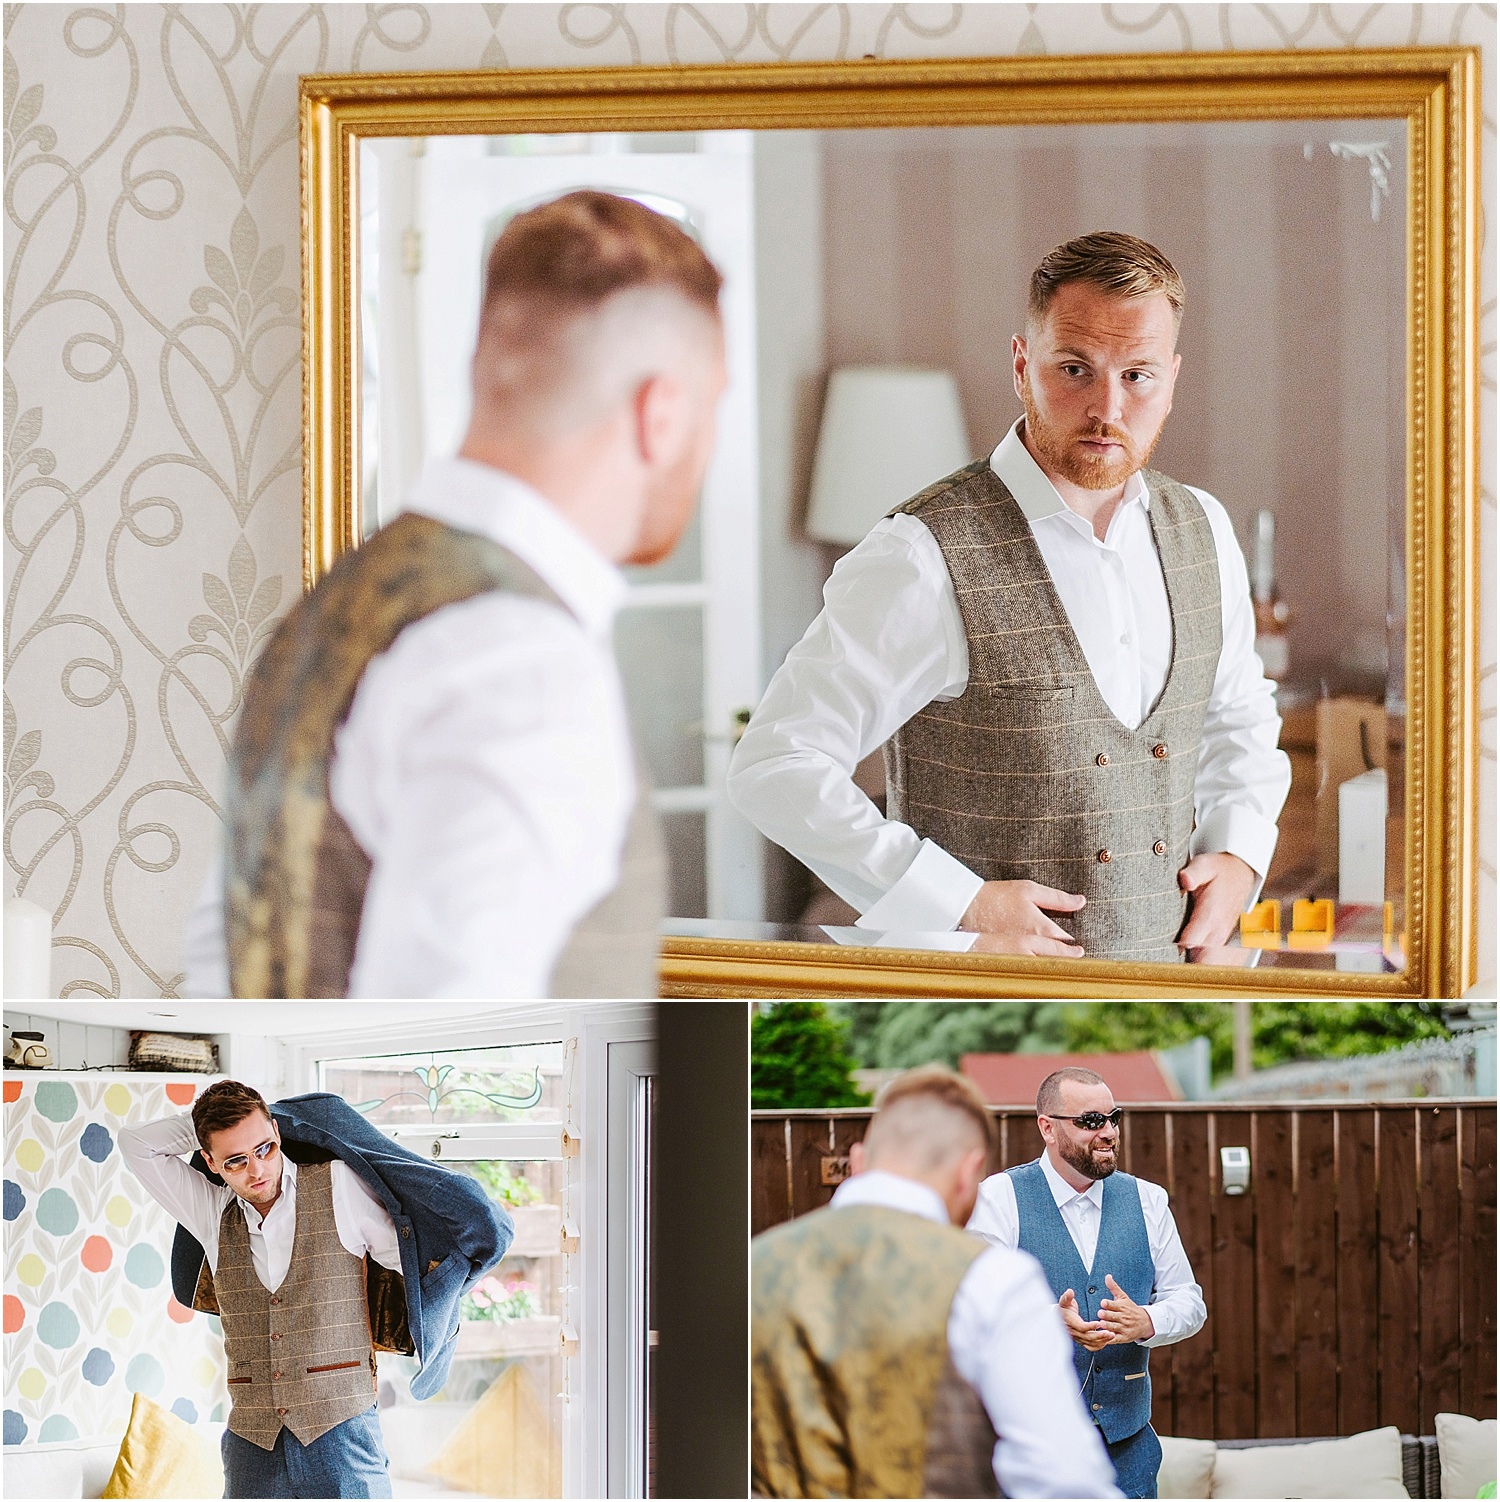 Wedding at Healey Barn - wedding photography by www.2tonephotography.co.uk 021.jpg